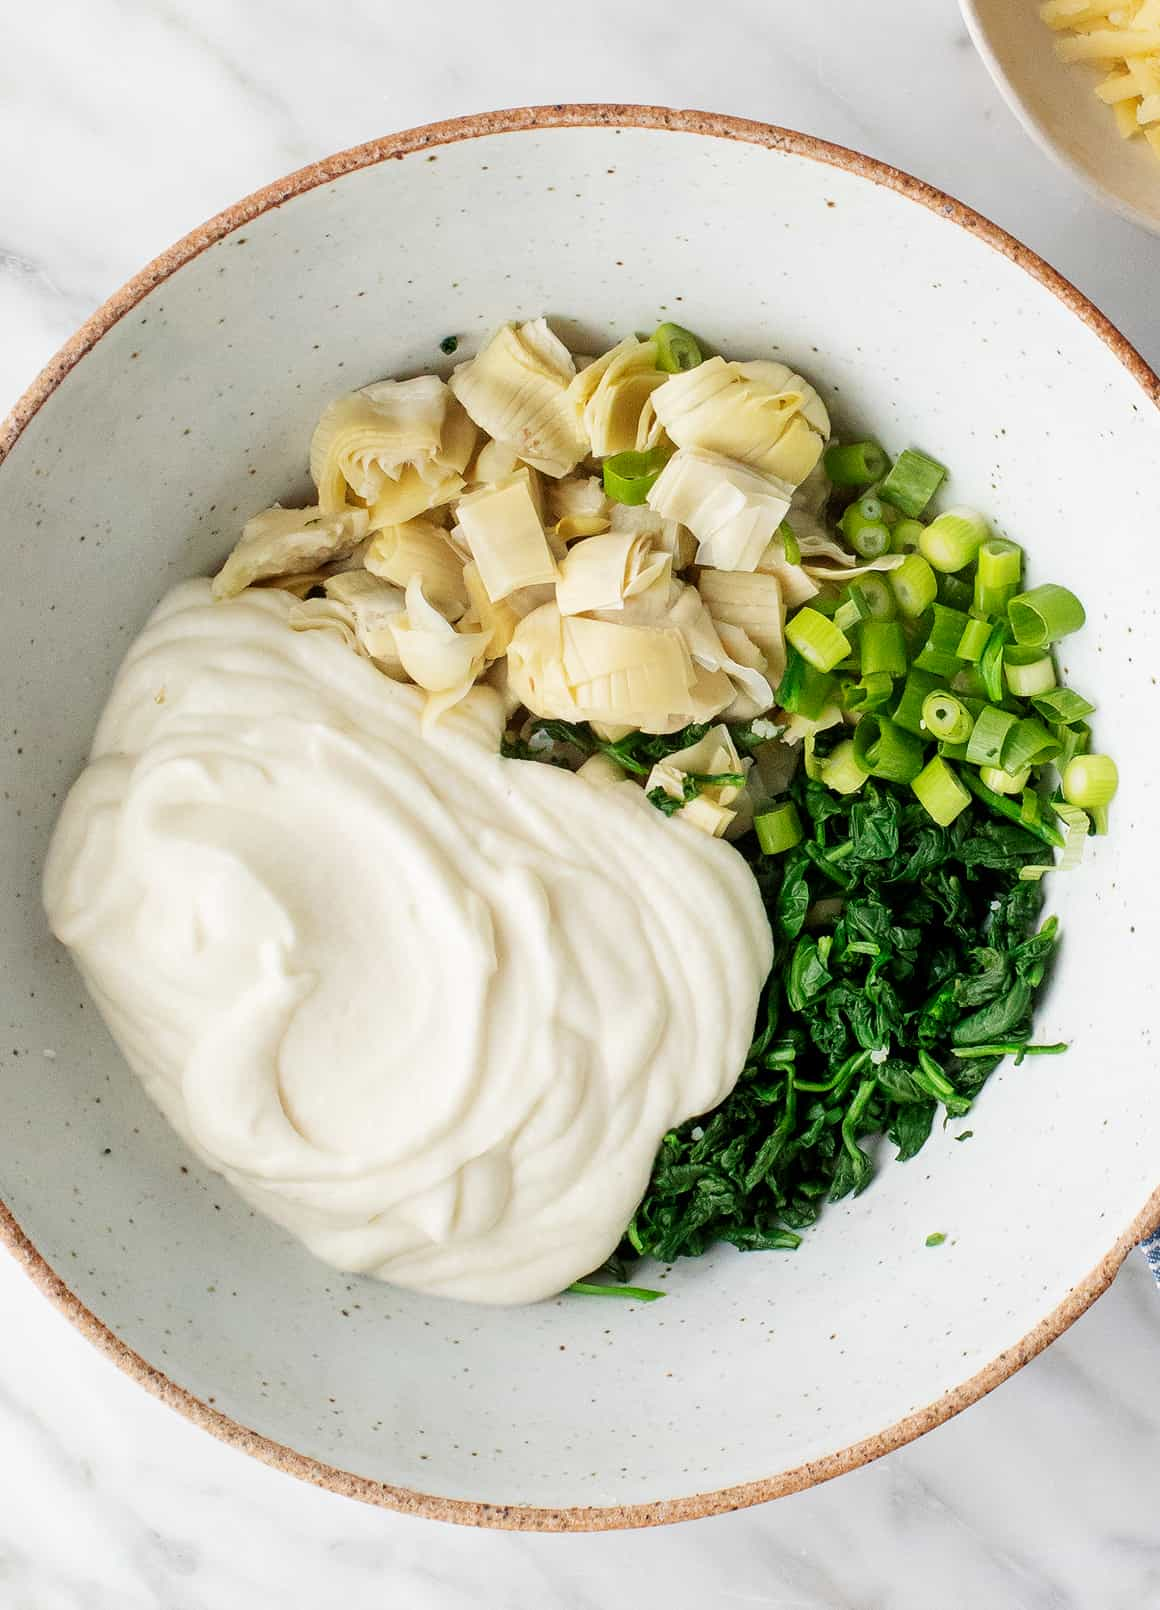 Creamy sauce, artichokes, scallions, and spinach in a bowl